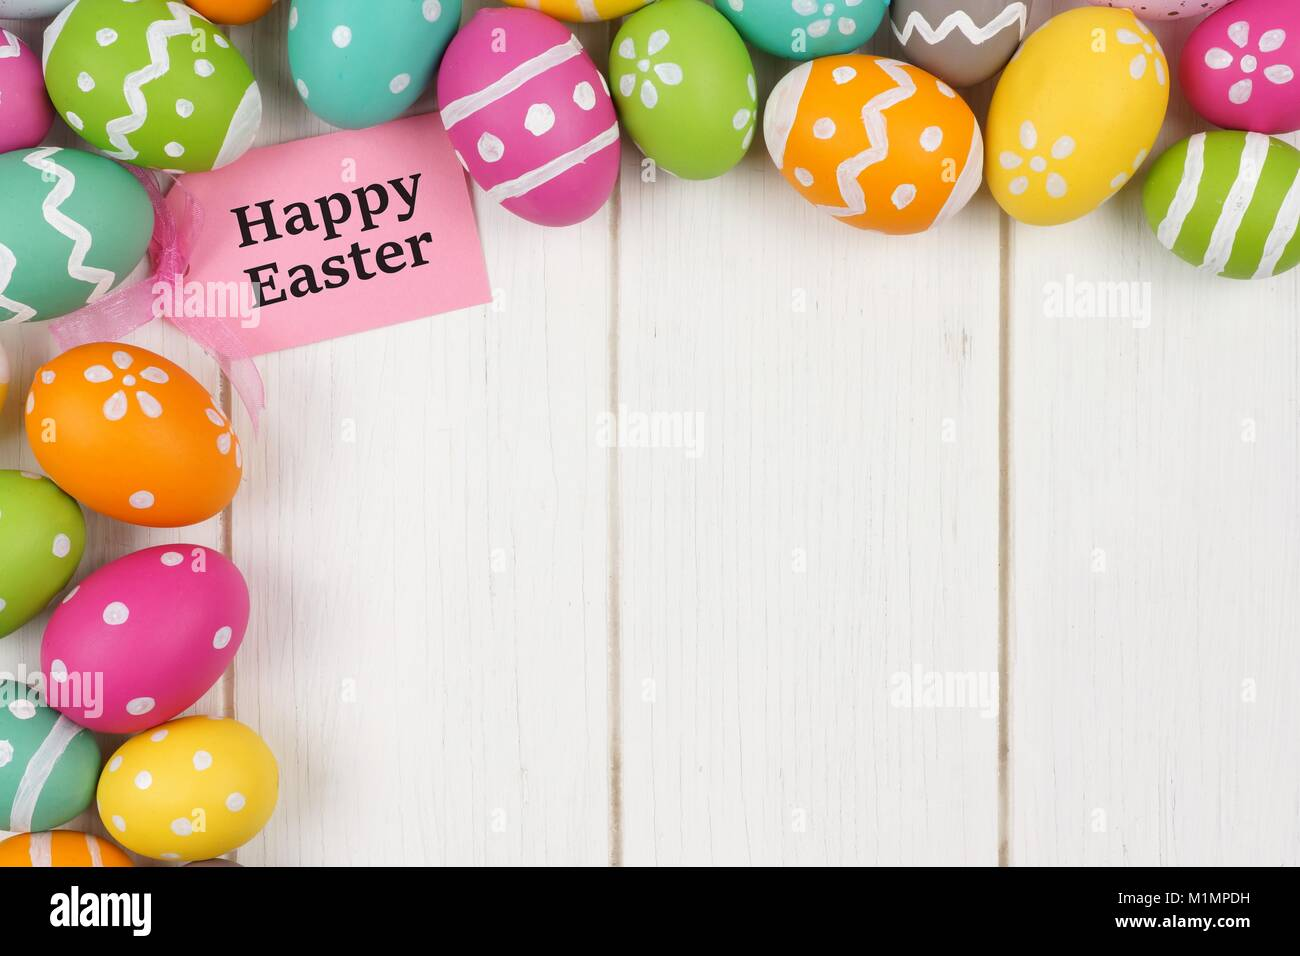 Happy easter gift tag with colorful easter egg corner border against happy easter gift tag with colorful easter egg corner border against a white wood background negle Image collections